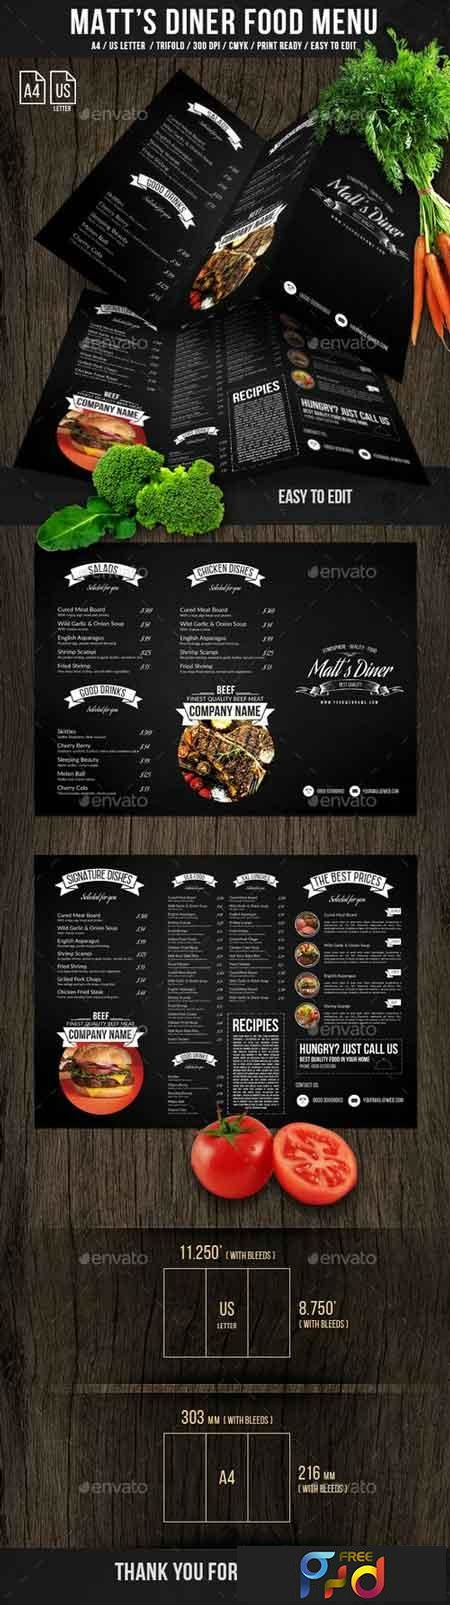 Matt's Diner Trifold A4 and US Letter Menu 21245528 1